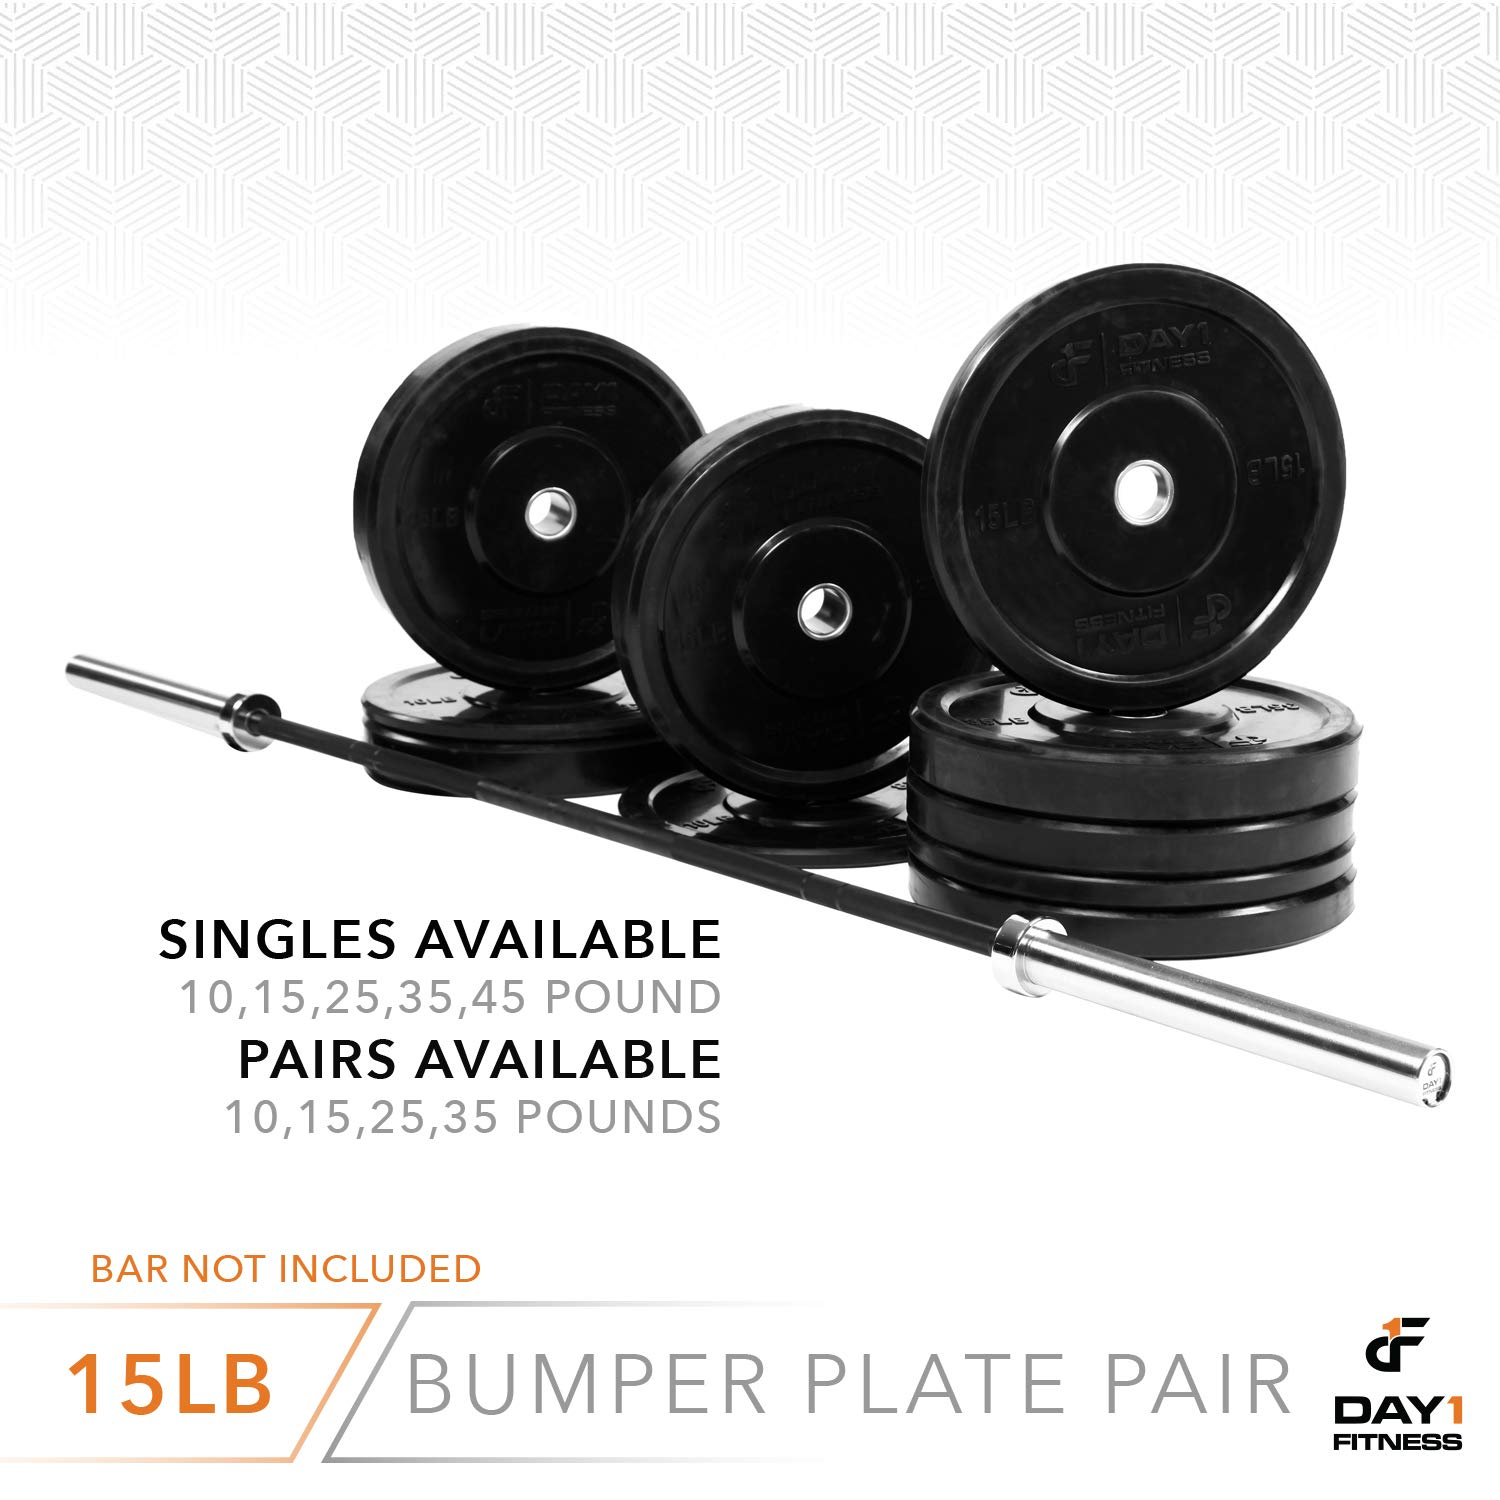 """Day 1 Fitness Olympic Bumper Weighted Plate 2"""" for Barbells, Bars – 15 lb Set of 2 Plates - Shock-Absorbing, Minimal Bounce Steel Weights with Bumpers for Lifting, Strength Training, and Working Out by Day 1 Fitness (Image #6)"""